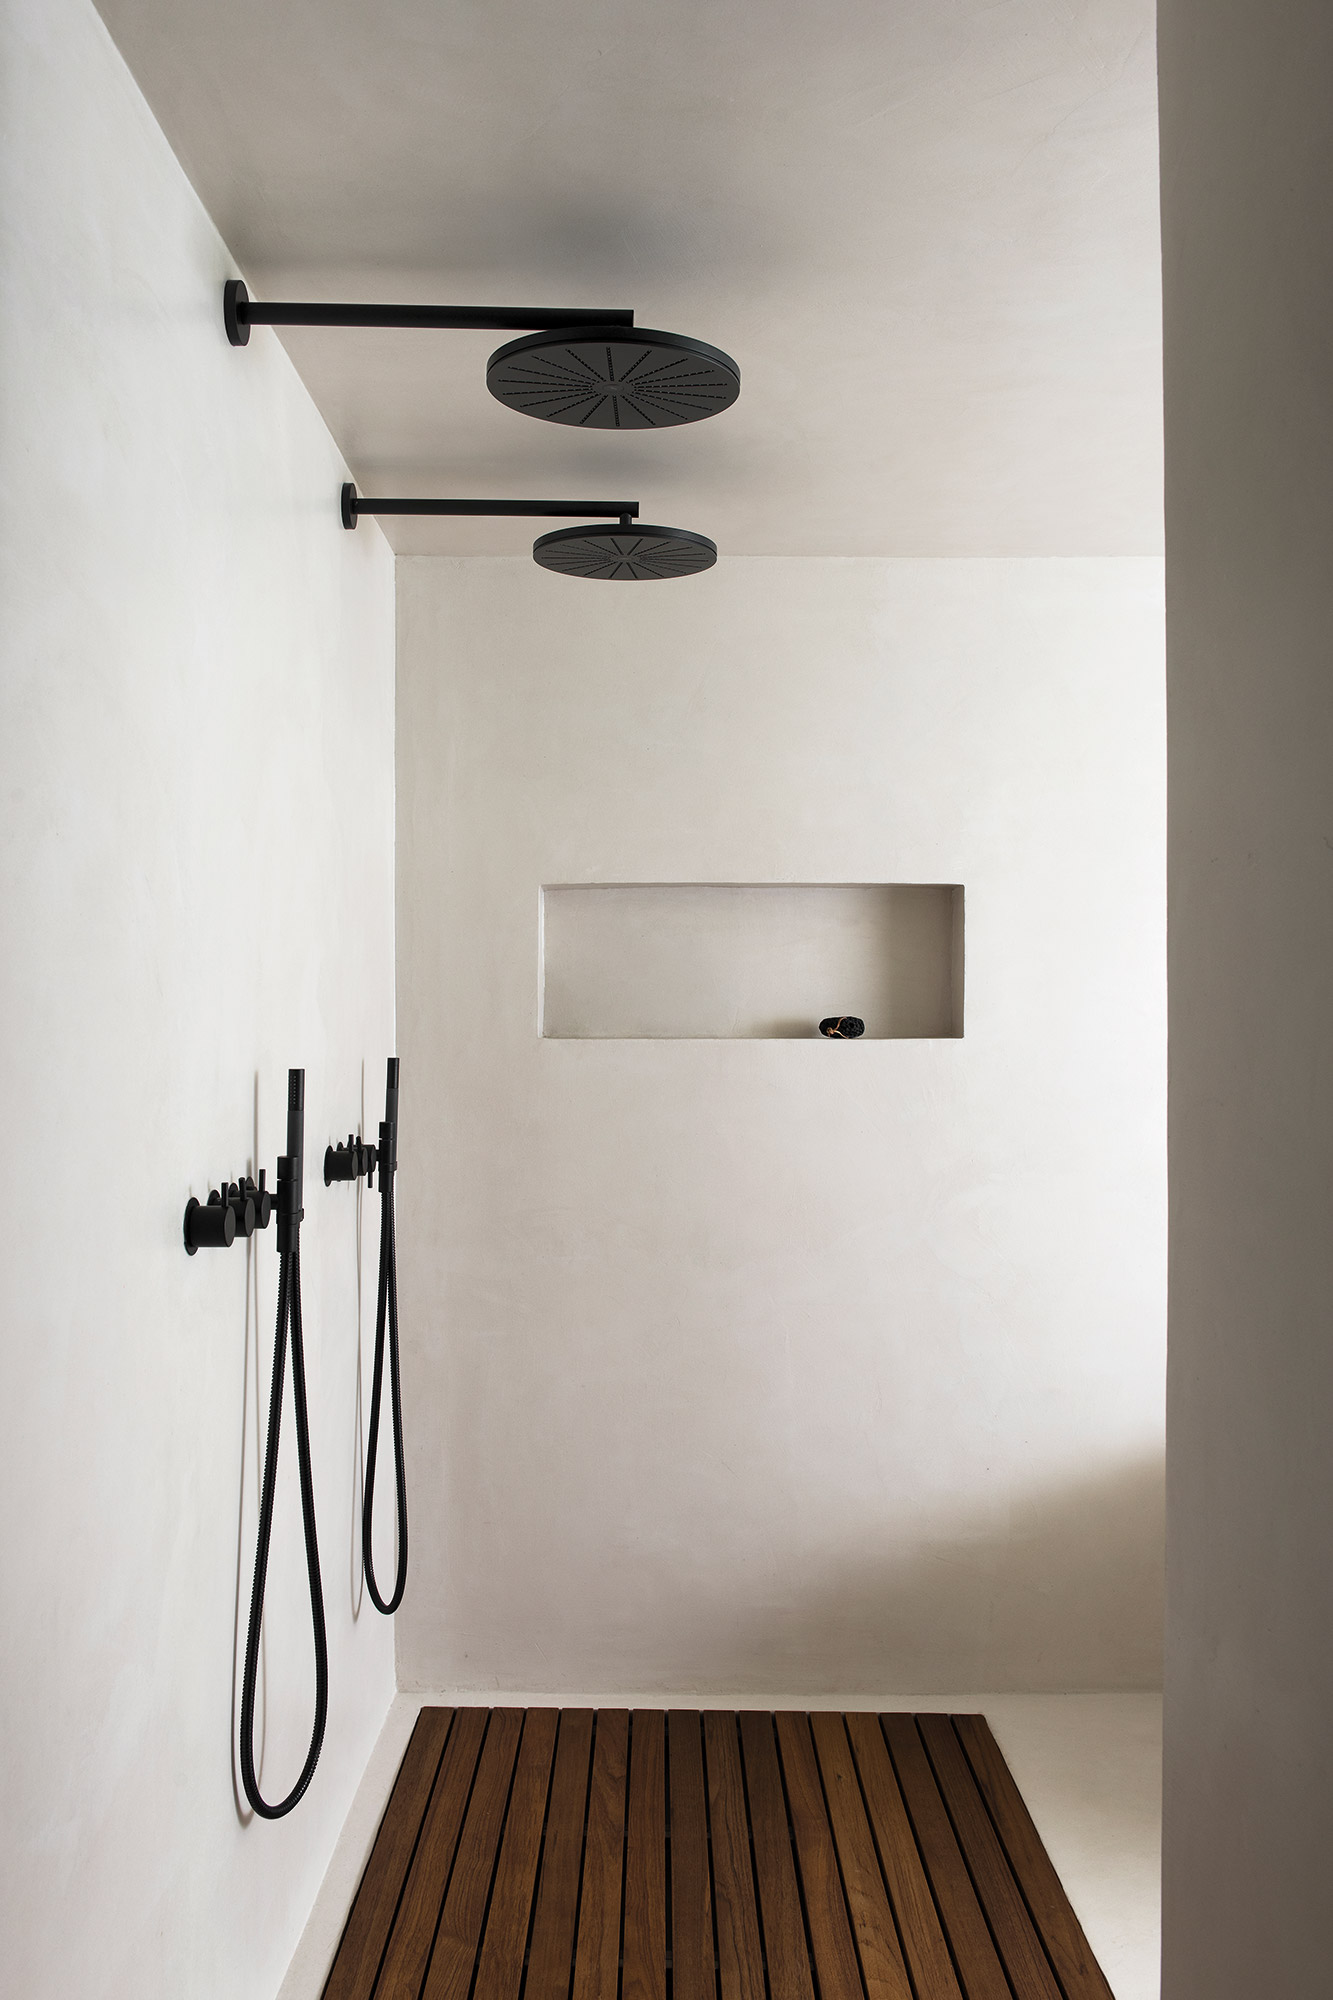 Black shower fixtures by Vola